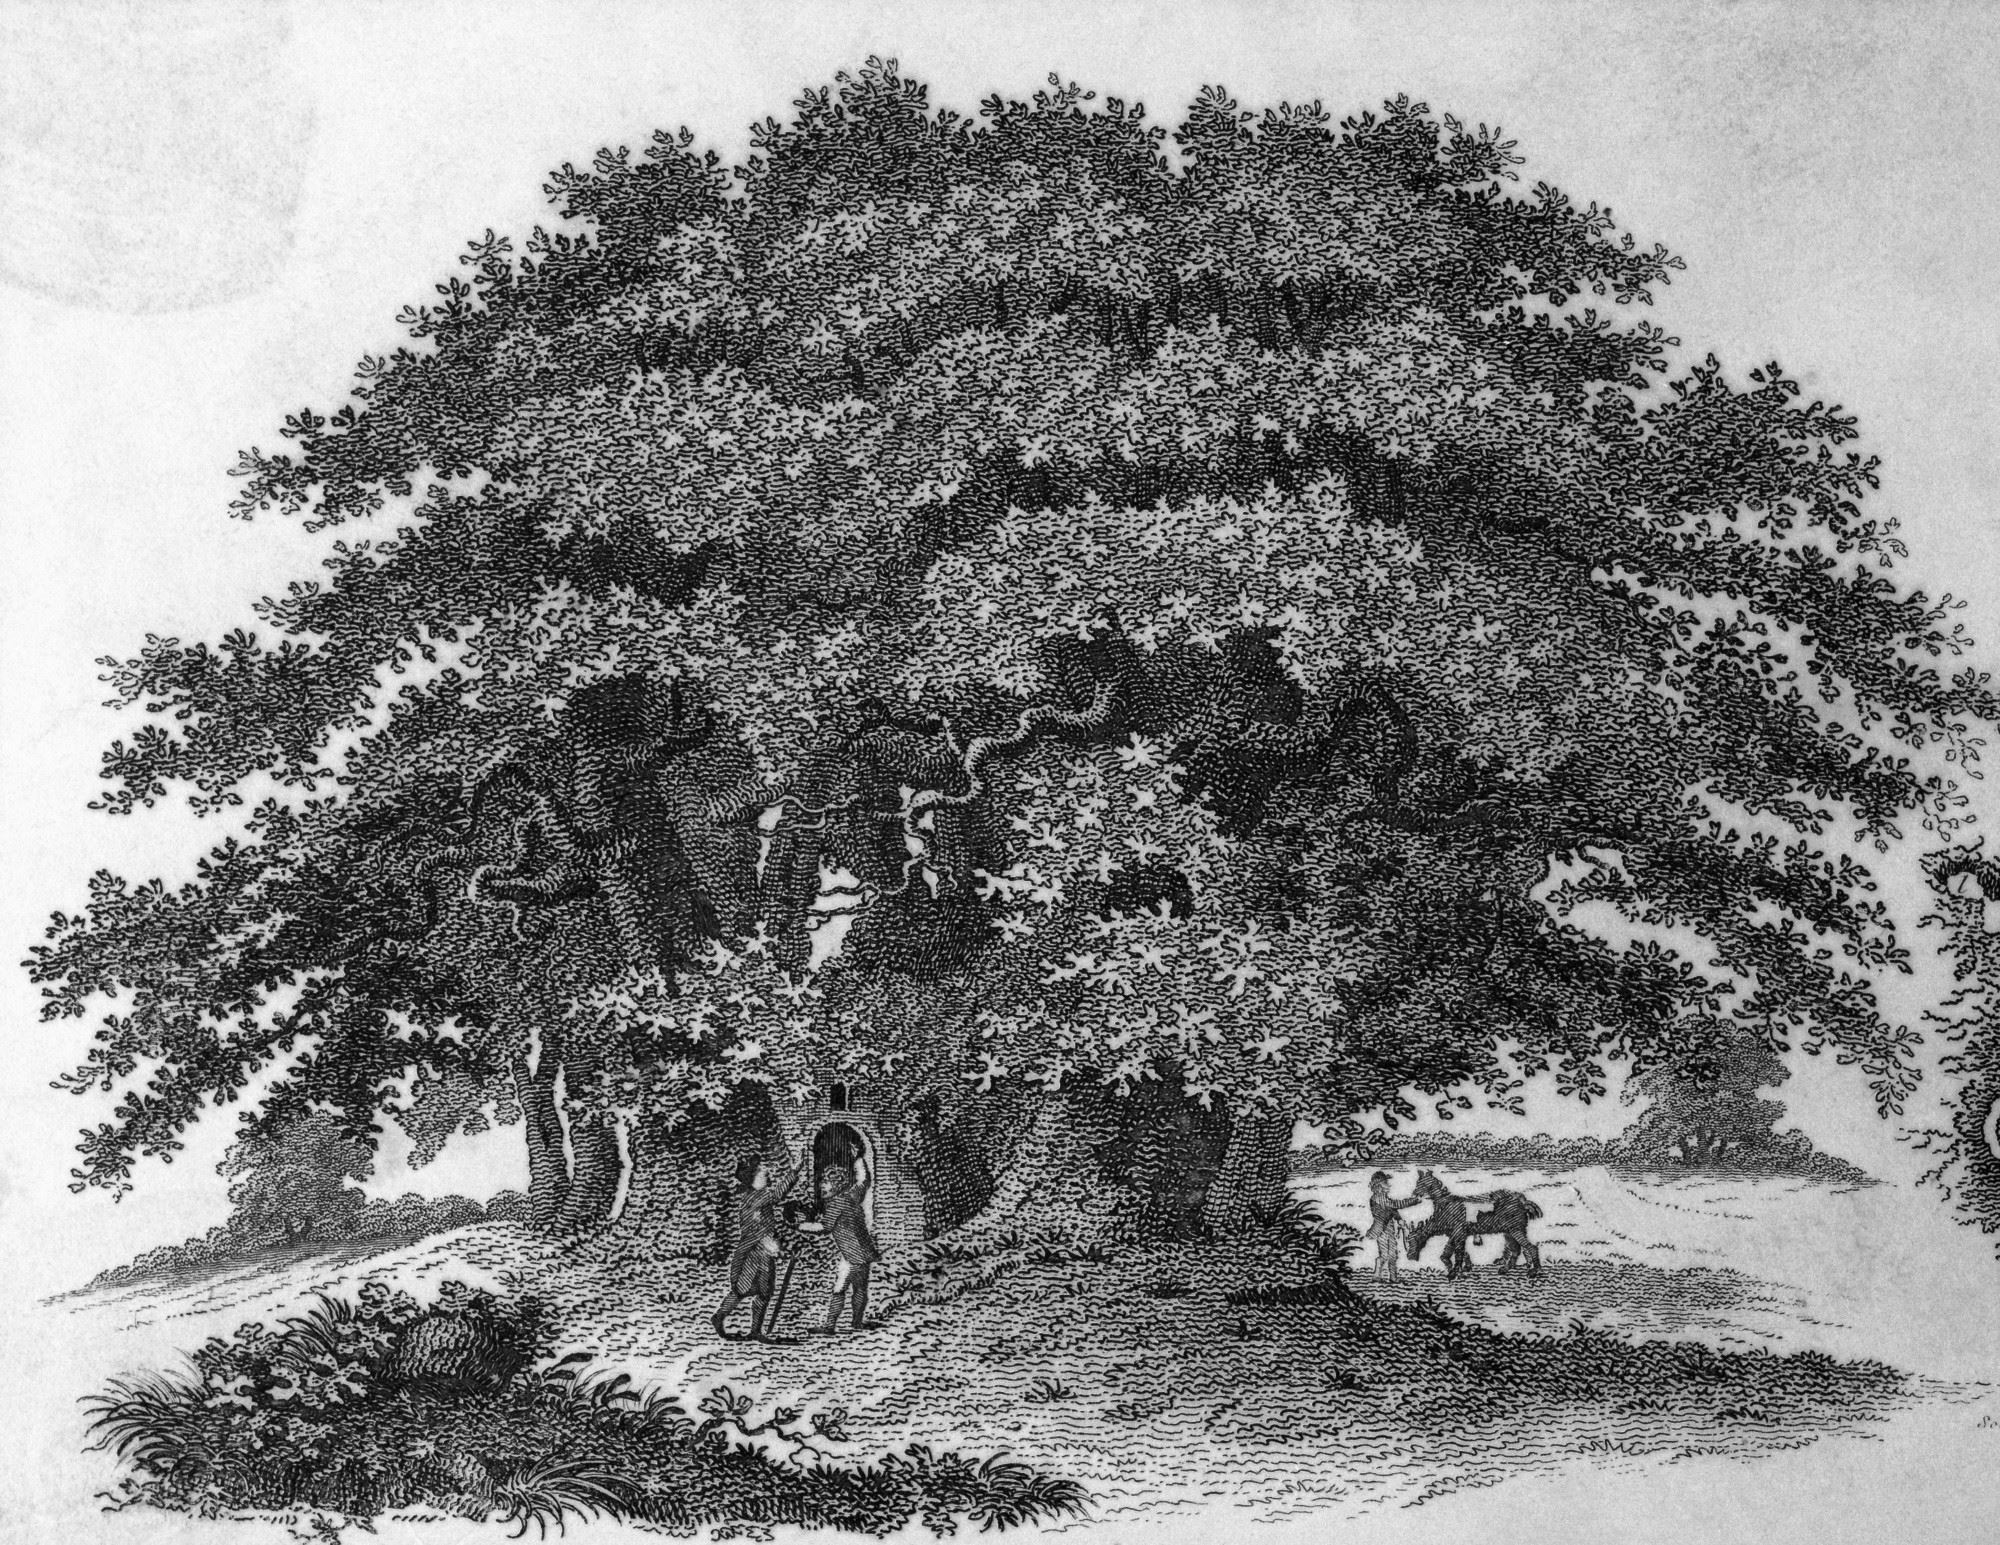 Black and white drawing of a chestnut tree in a field